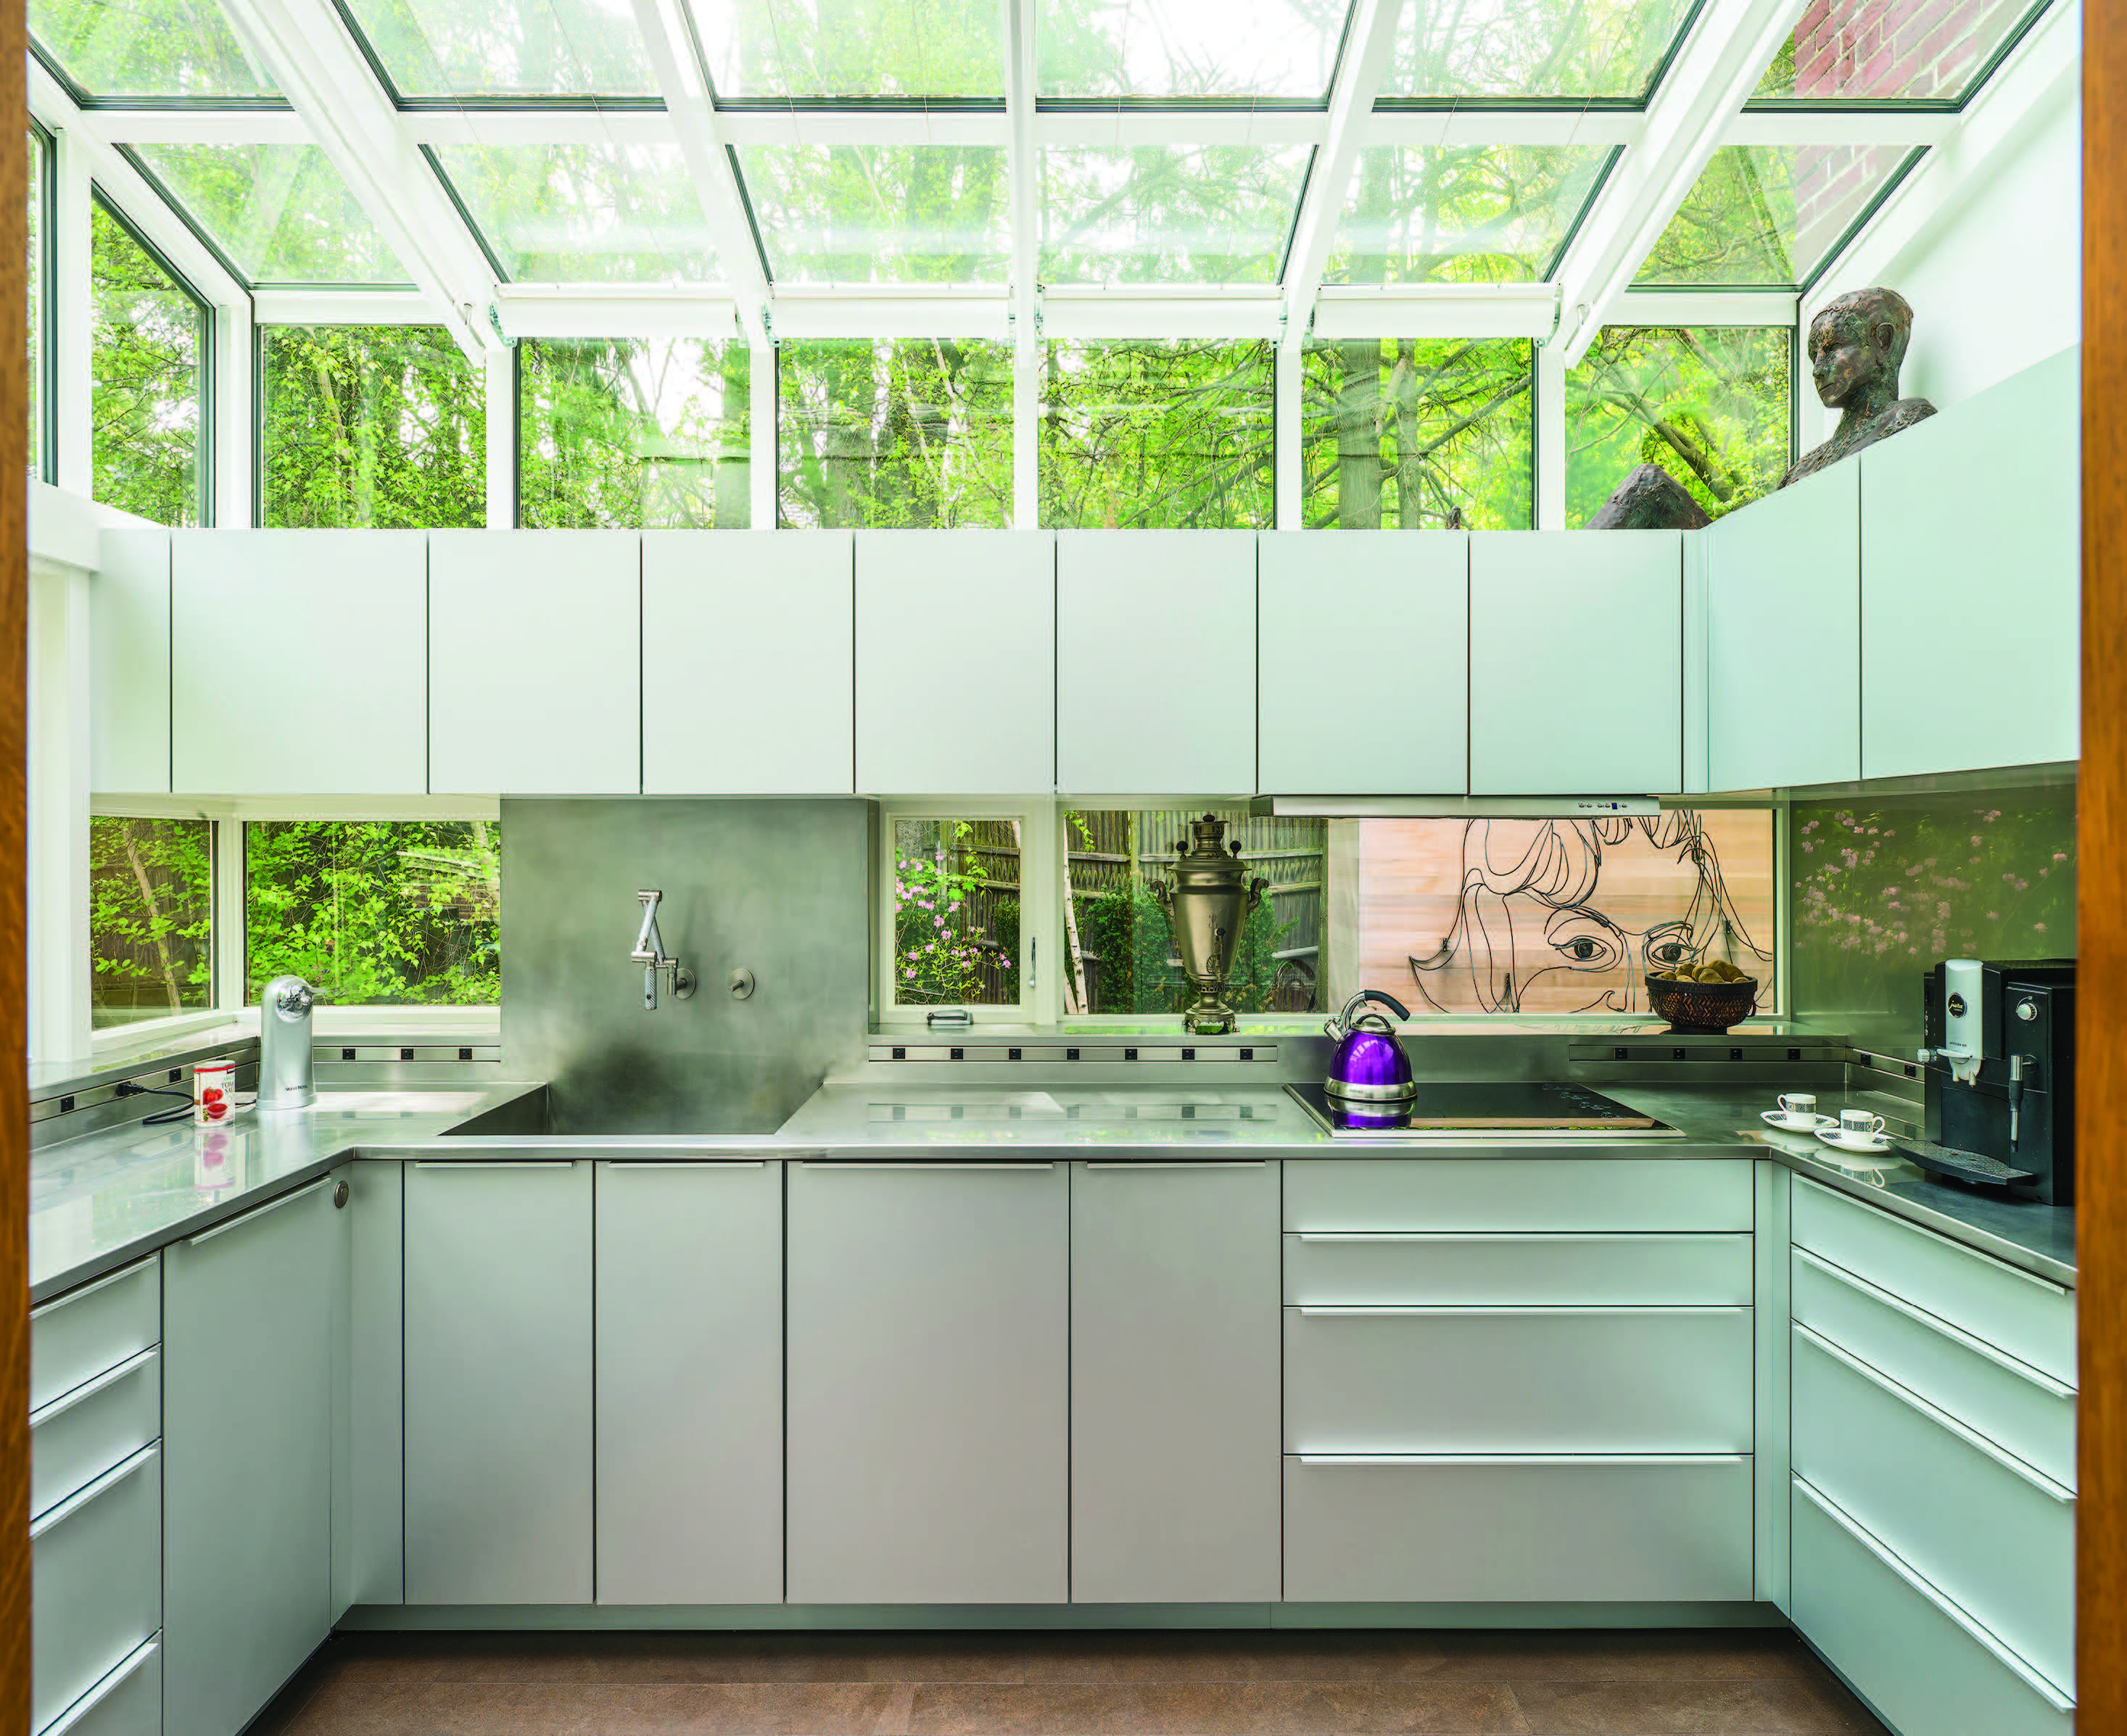 clarke s annual design contest winners contemporary kitchens resulted in a spectacular space that links the interior of the home with the beautiful natural exterior while maintaining a clean ergonomic kitchen